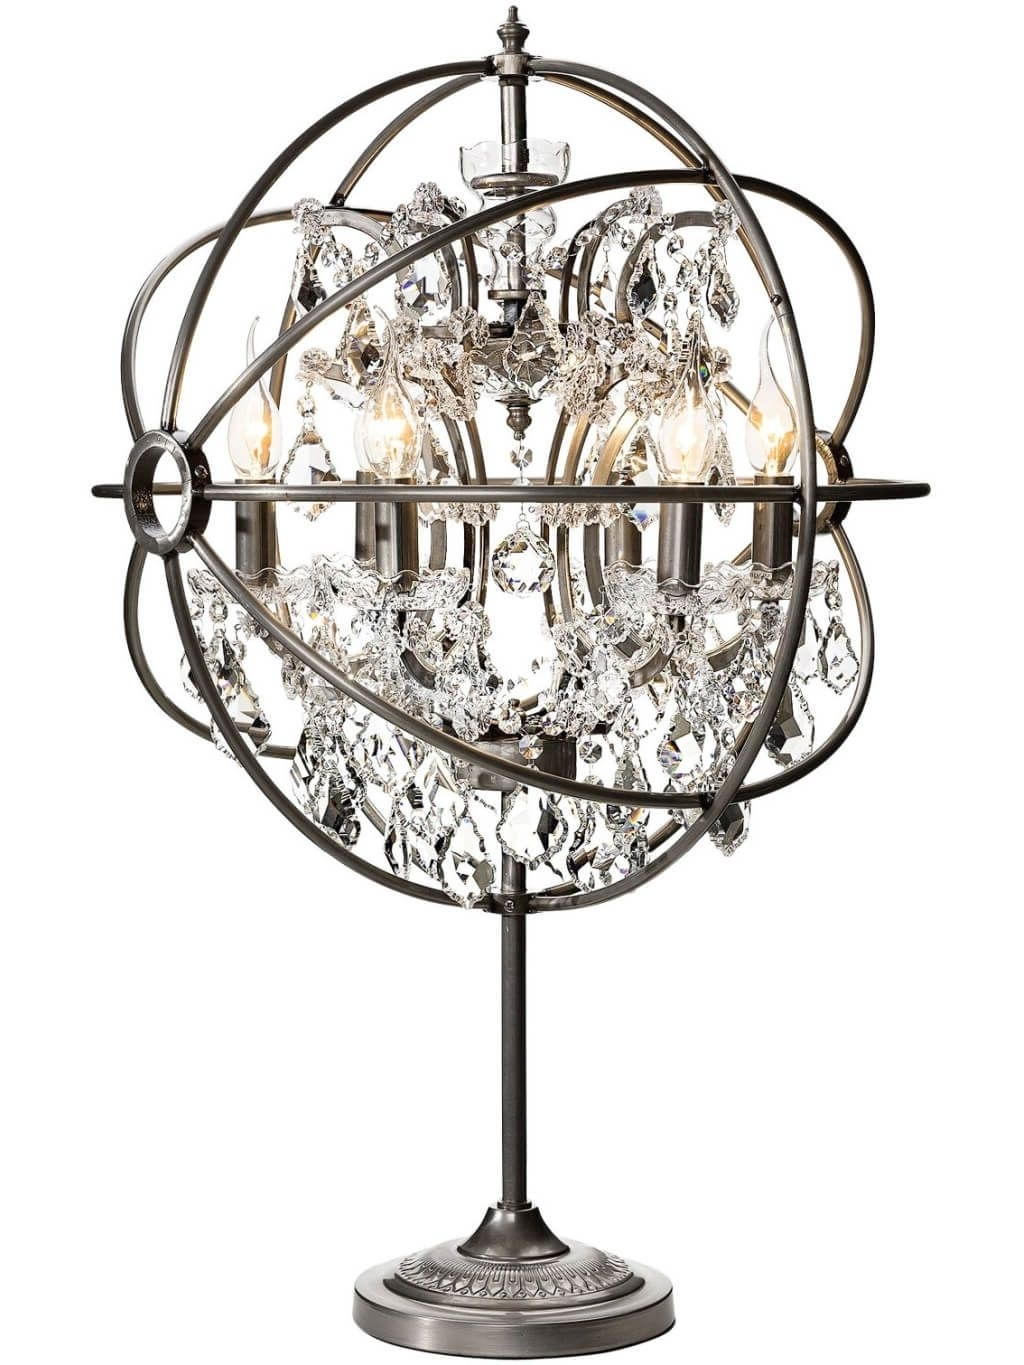 Famous Small Chandelier Table Lamps Regarding Lighting: Enticing Small Chandelier Table Lamp With Aluminum Base (View 7 of 15)